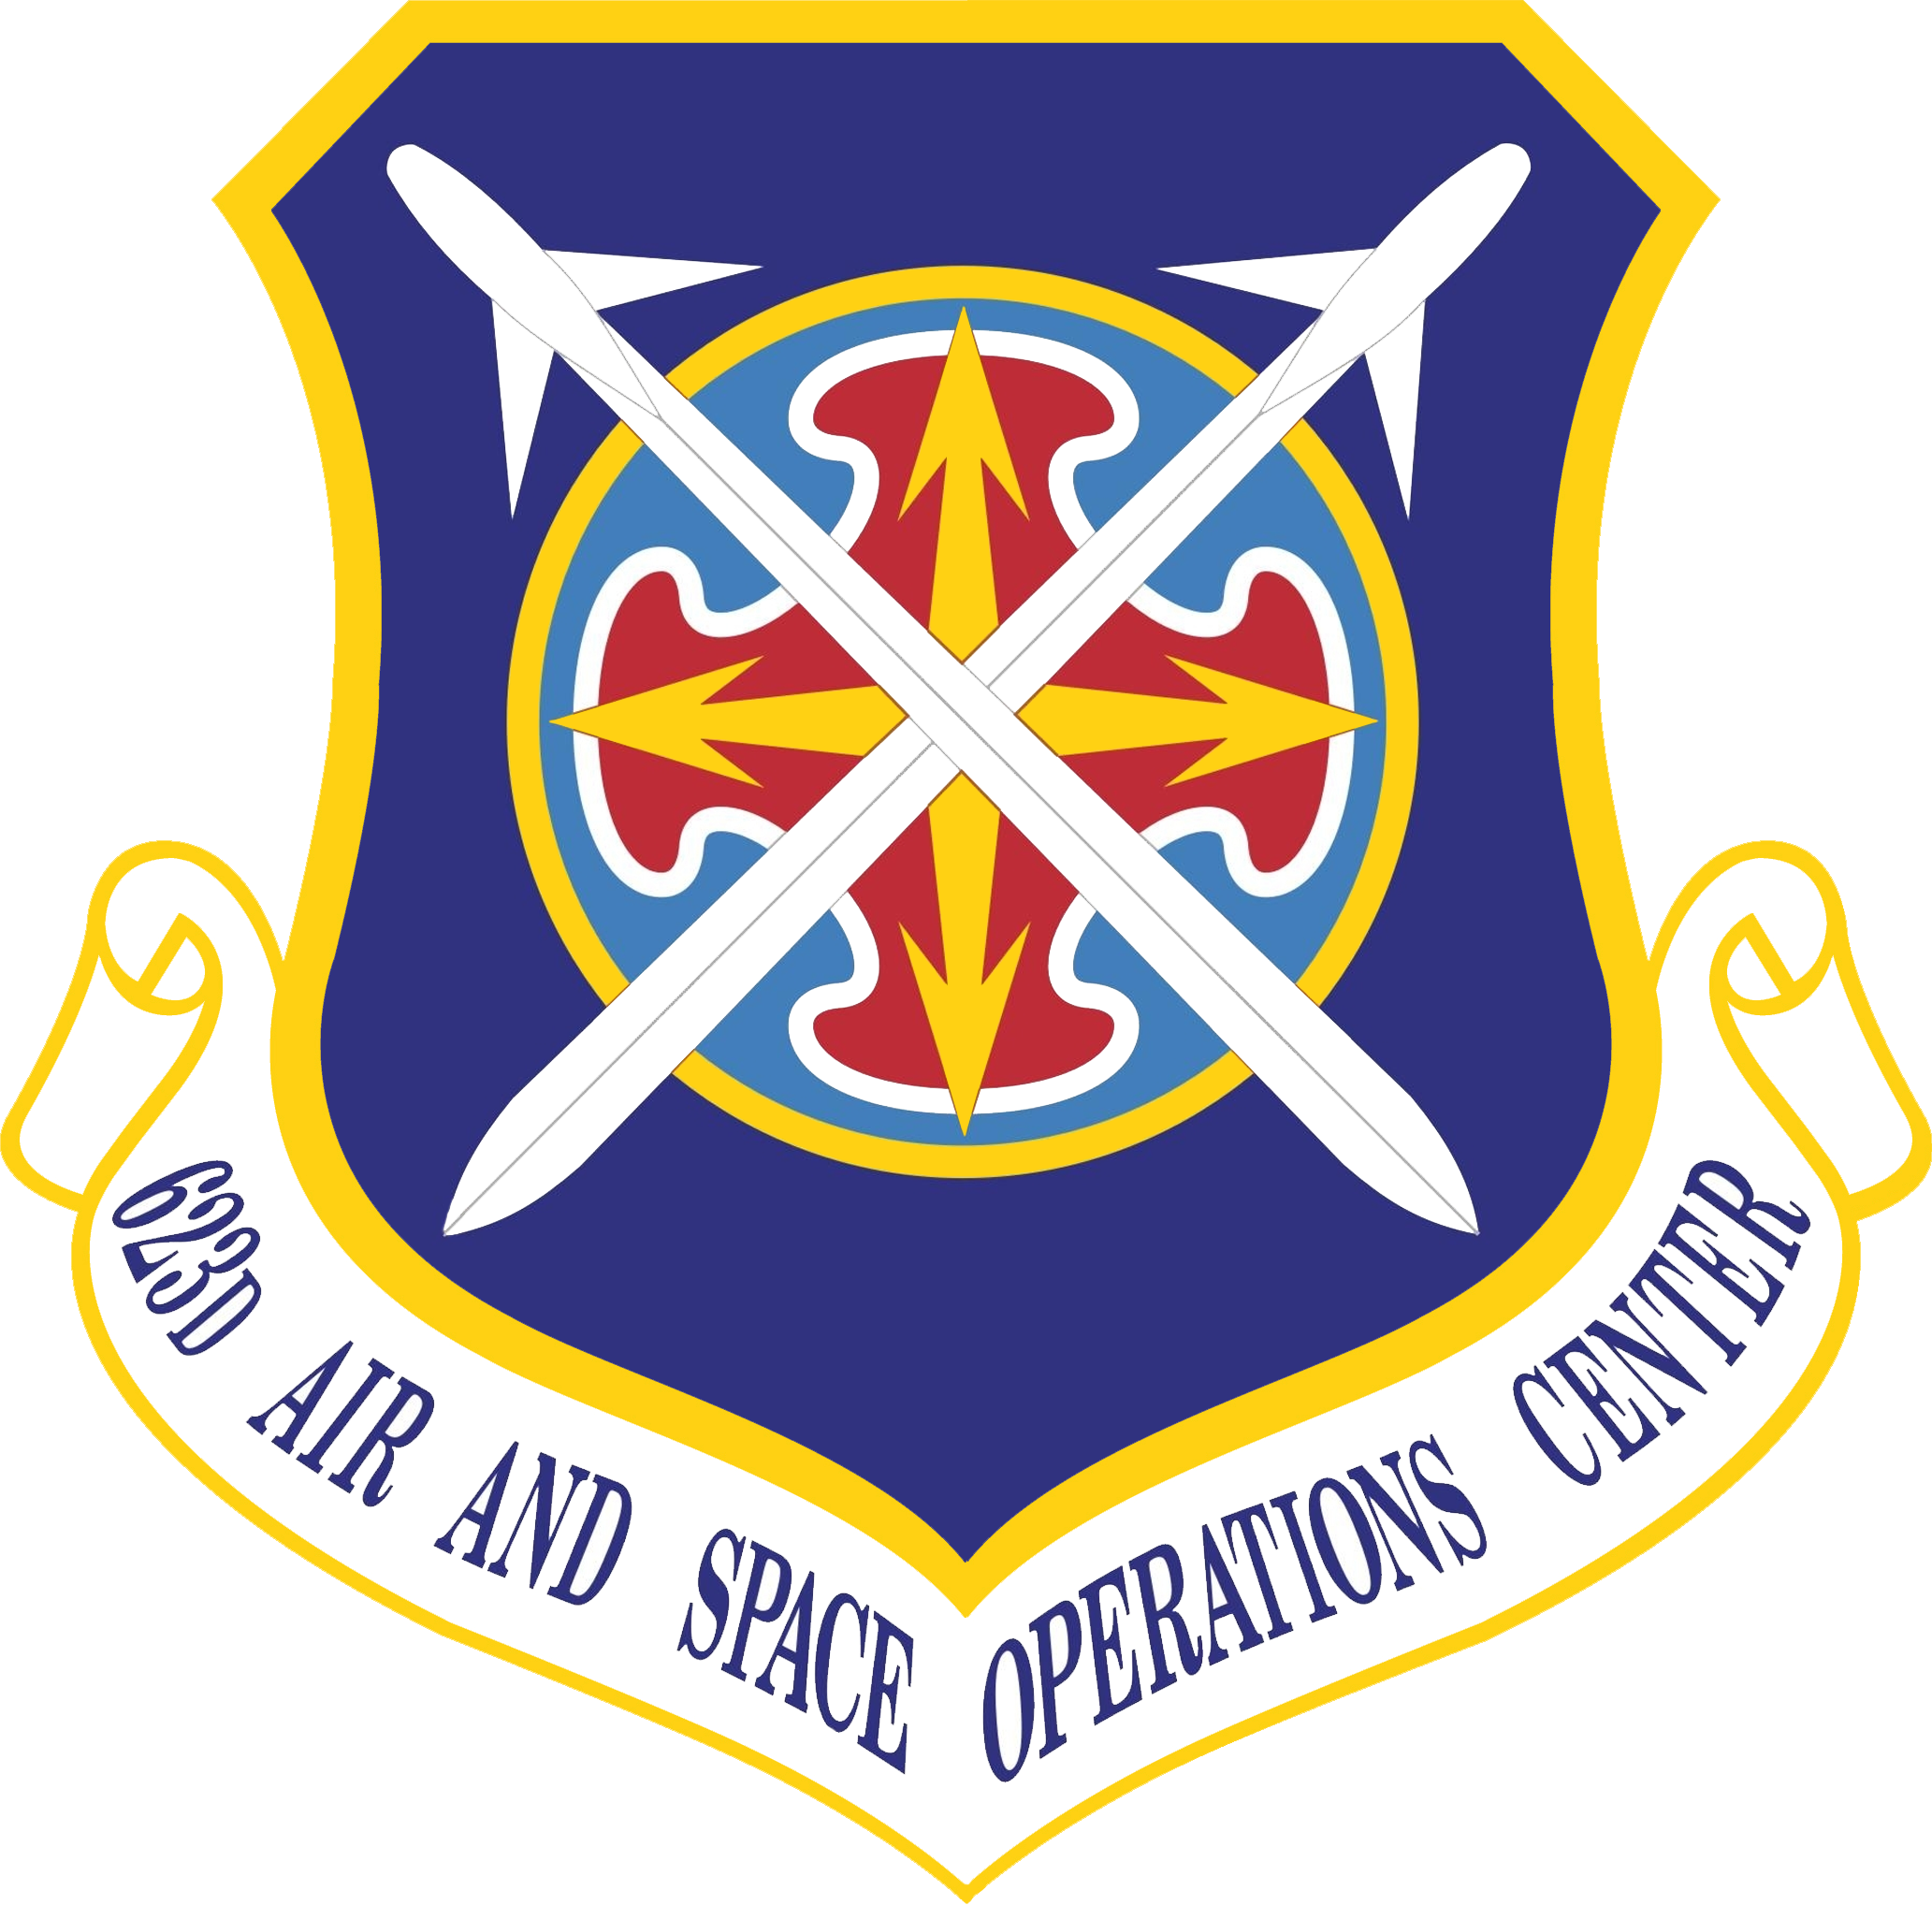 623D Air Space Operations Center PNG logo #41306